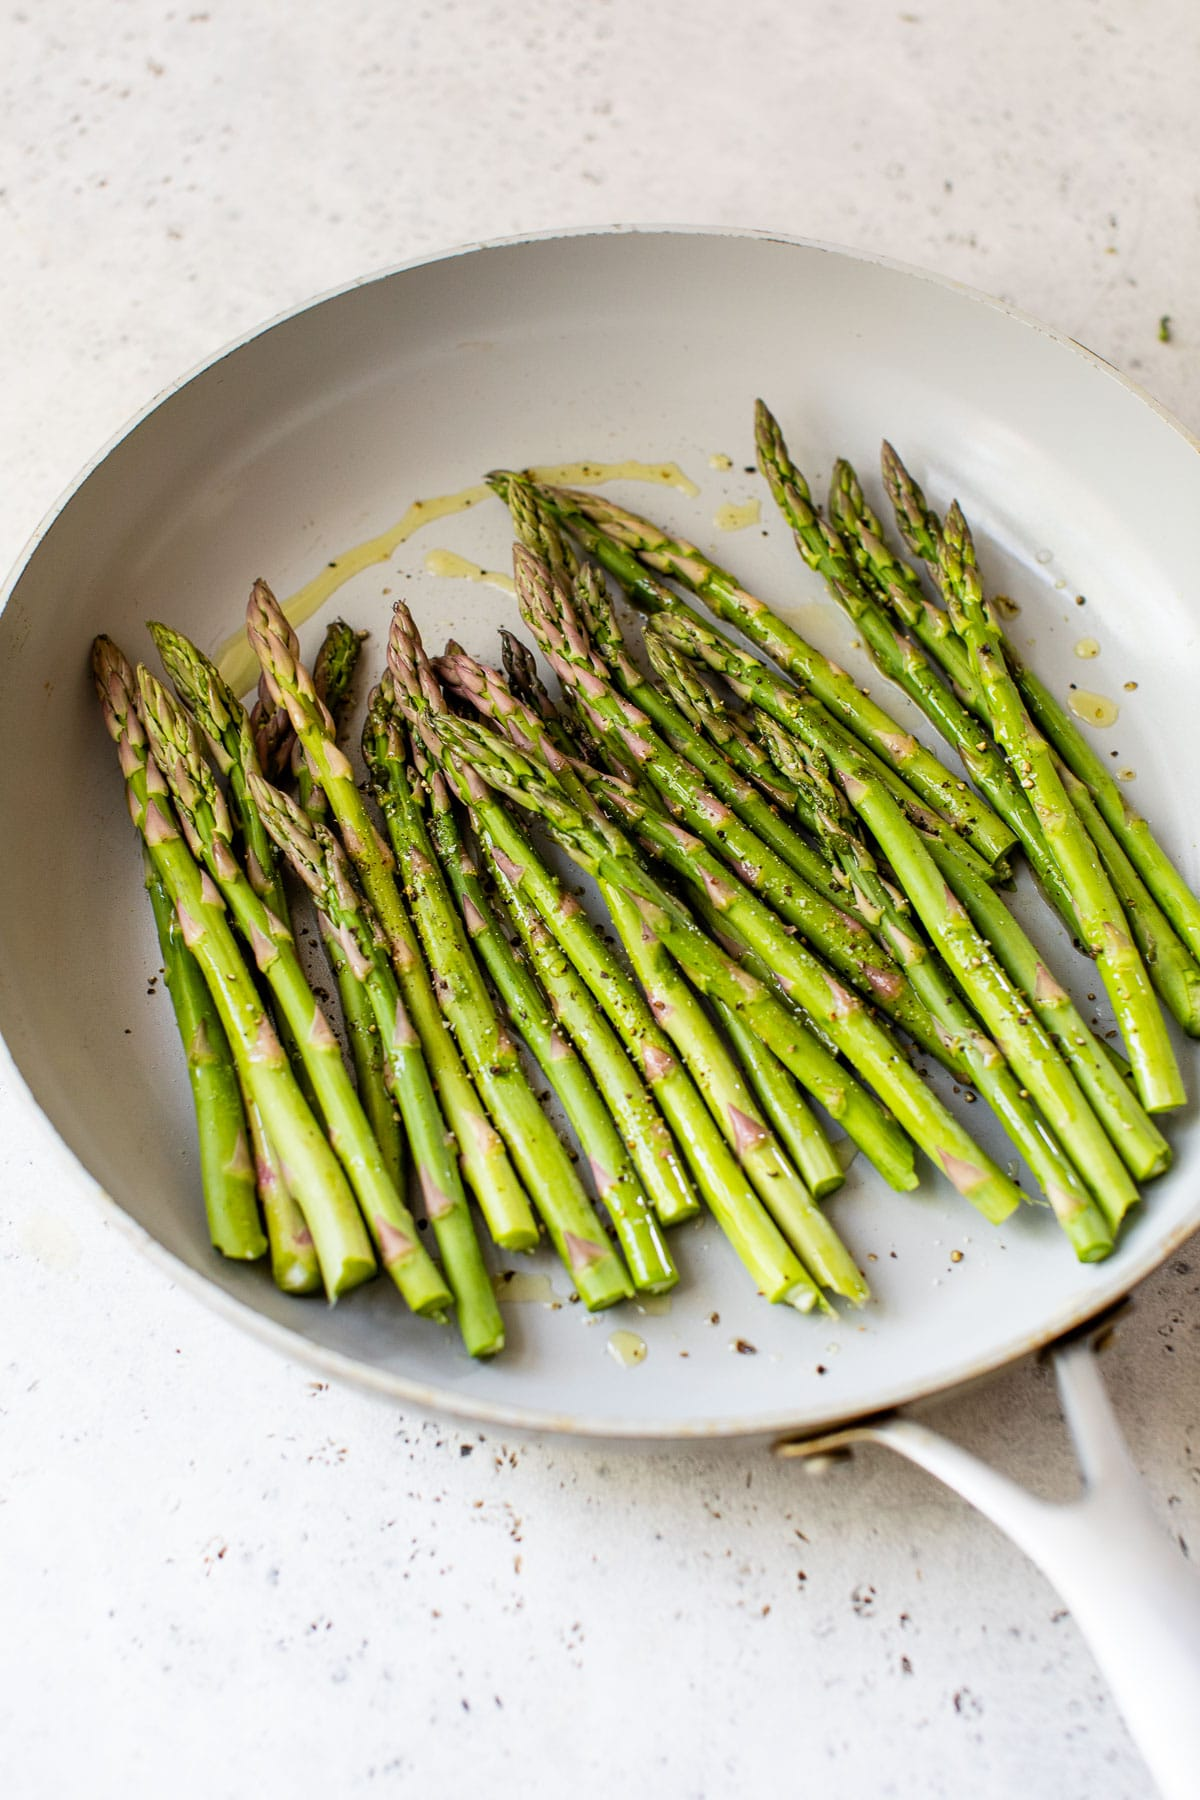 raw asparagus in a skillet drizzled with olive oil